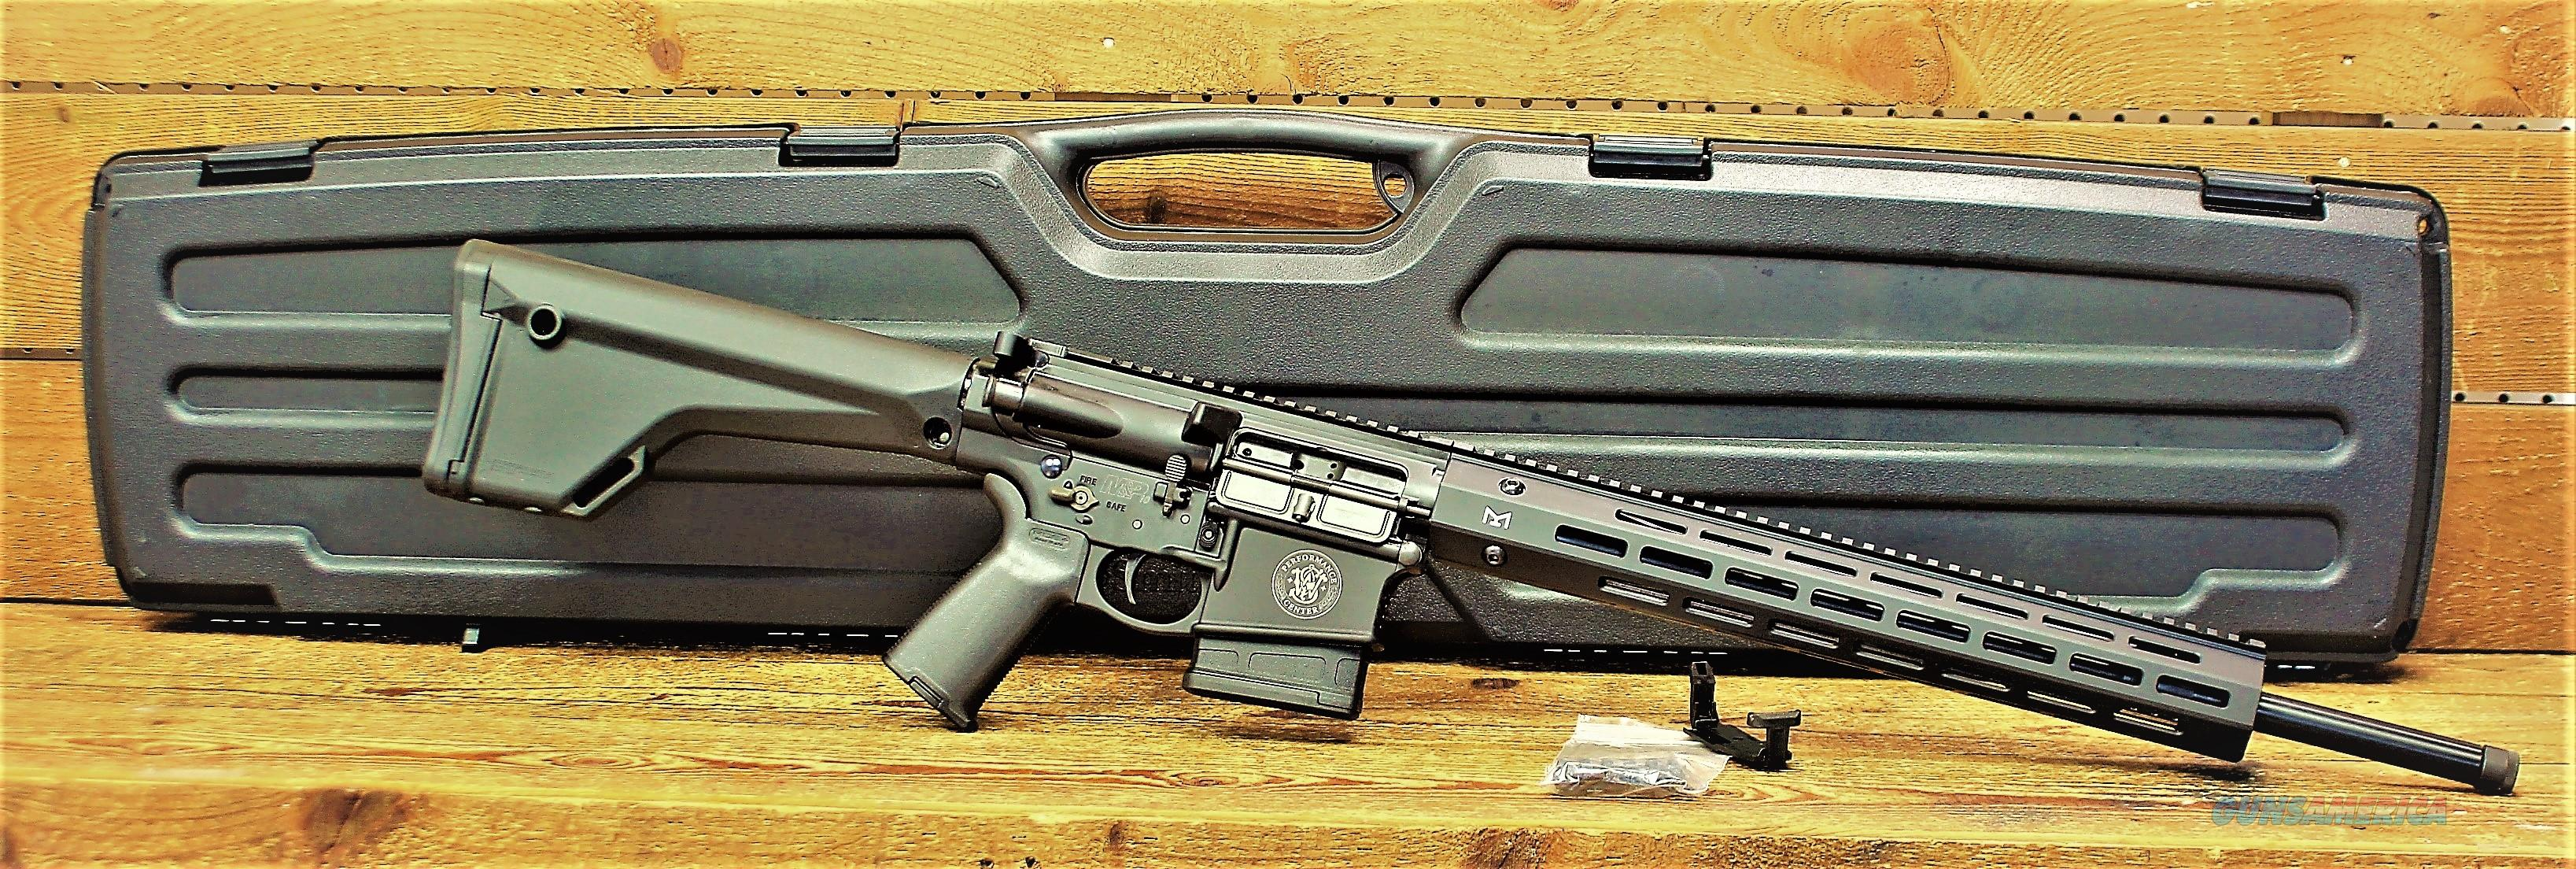 $104  EASY PAY DOWN LAYAWAY Performance Center Smith&Wesson model M&P10 AR-10 in powerful 6.5 Creed LONG RANGE Carbon Steel Threaded Muzzle break TACTICAL Optic Ready AR10 Magpul MOE Black Synthetic Stock Armornite  accessory rail 10057  Guns > Rifles > Smith & Wesson Rifles > M&P